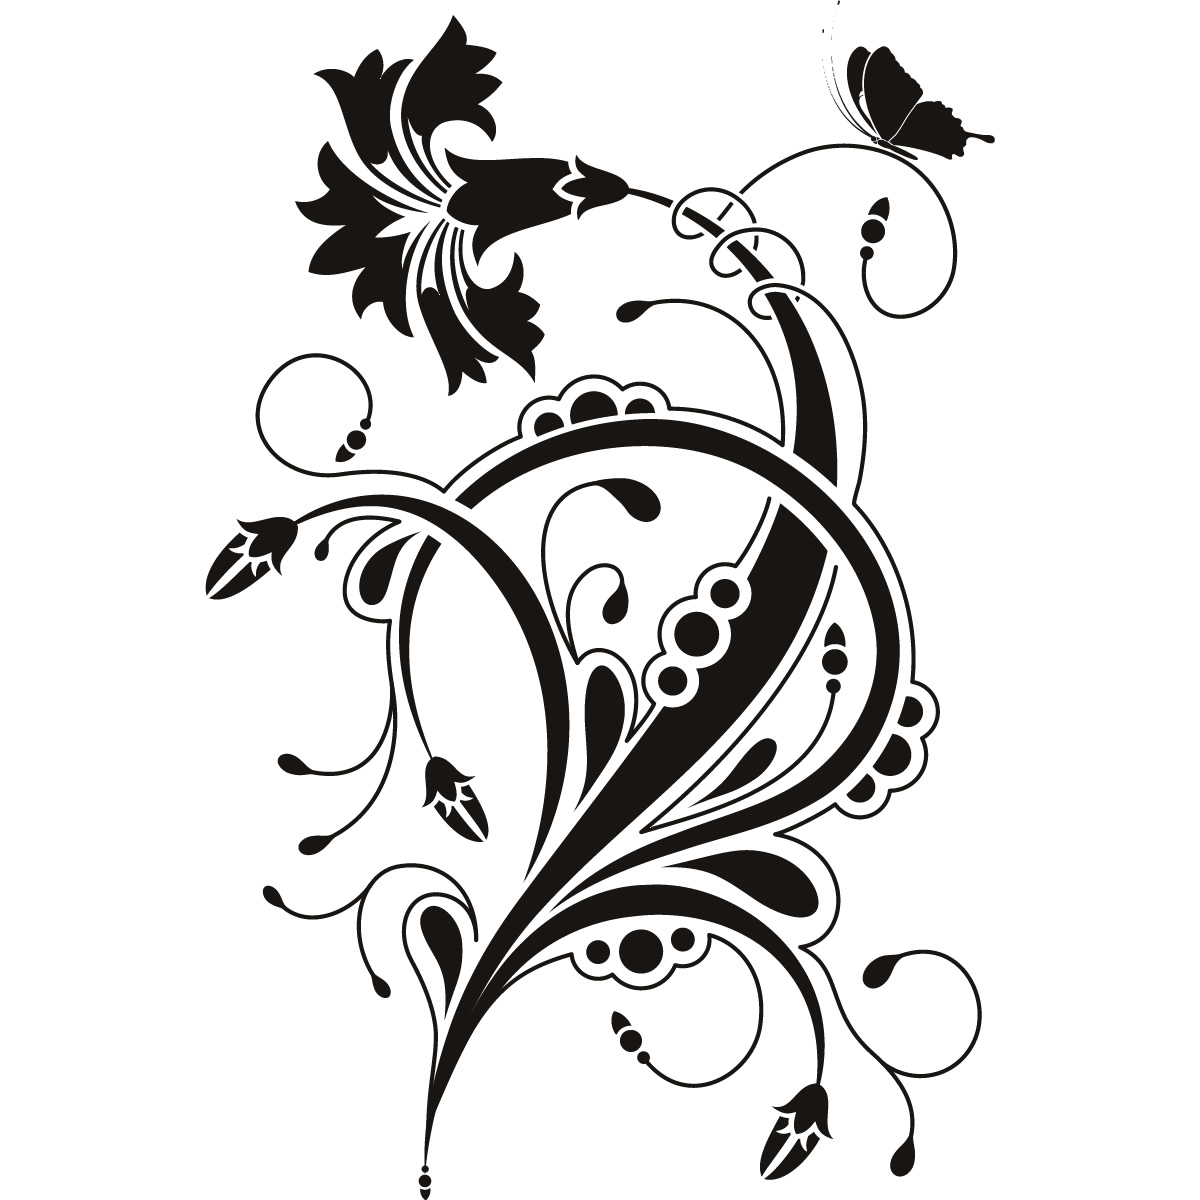 Details About Floral Design Wall Art Sticker Wall Decal Transfers